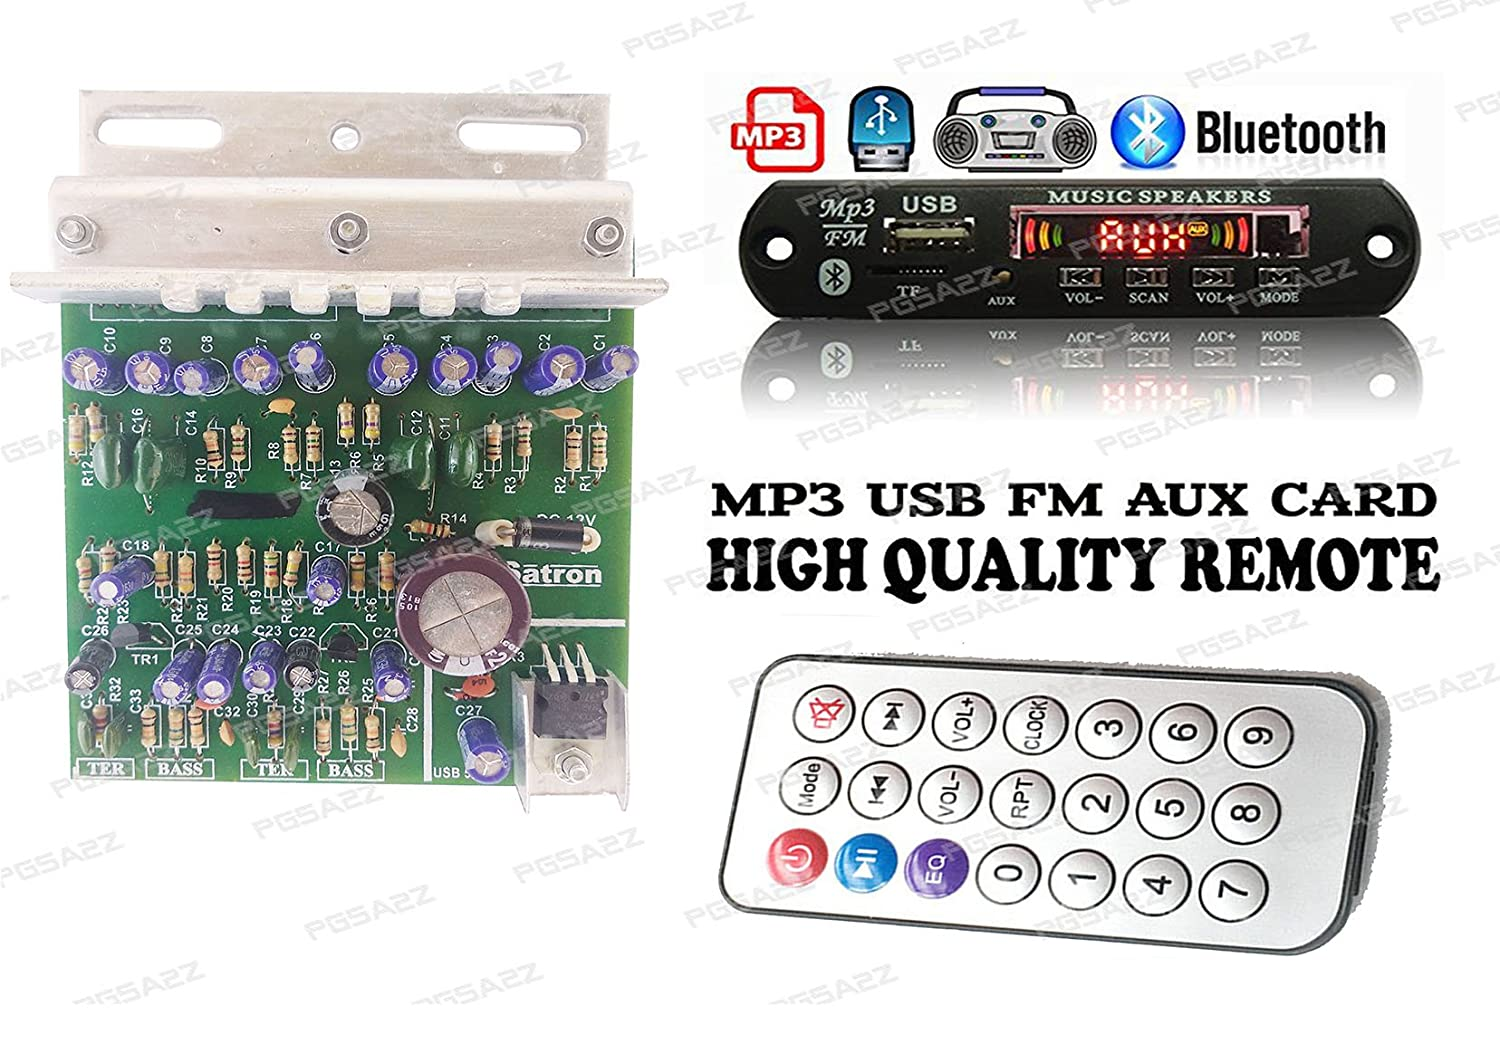 Pgsa2z 100w Amplifier Circuit Board 4440 X 2 With Bass Amp Kits Channel Subwoofer Audio For Diy Electronics